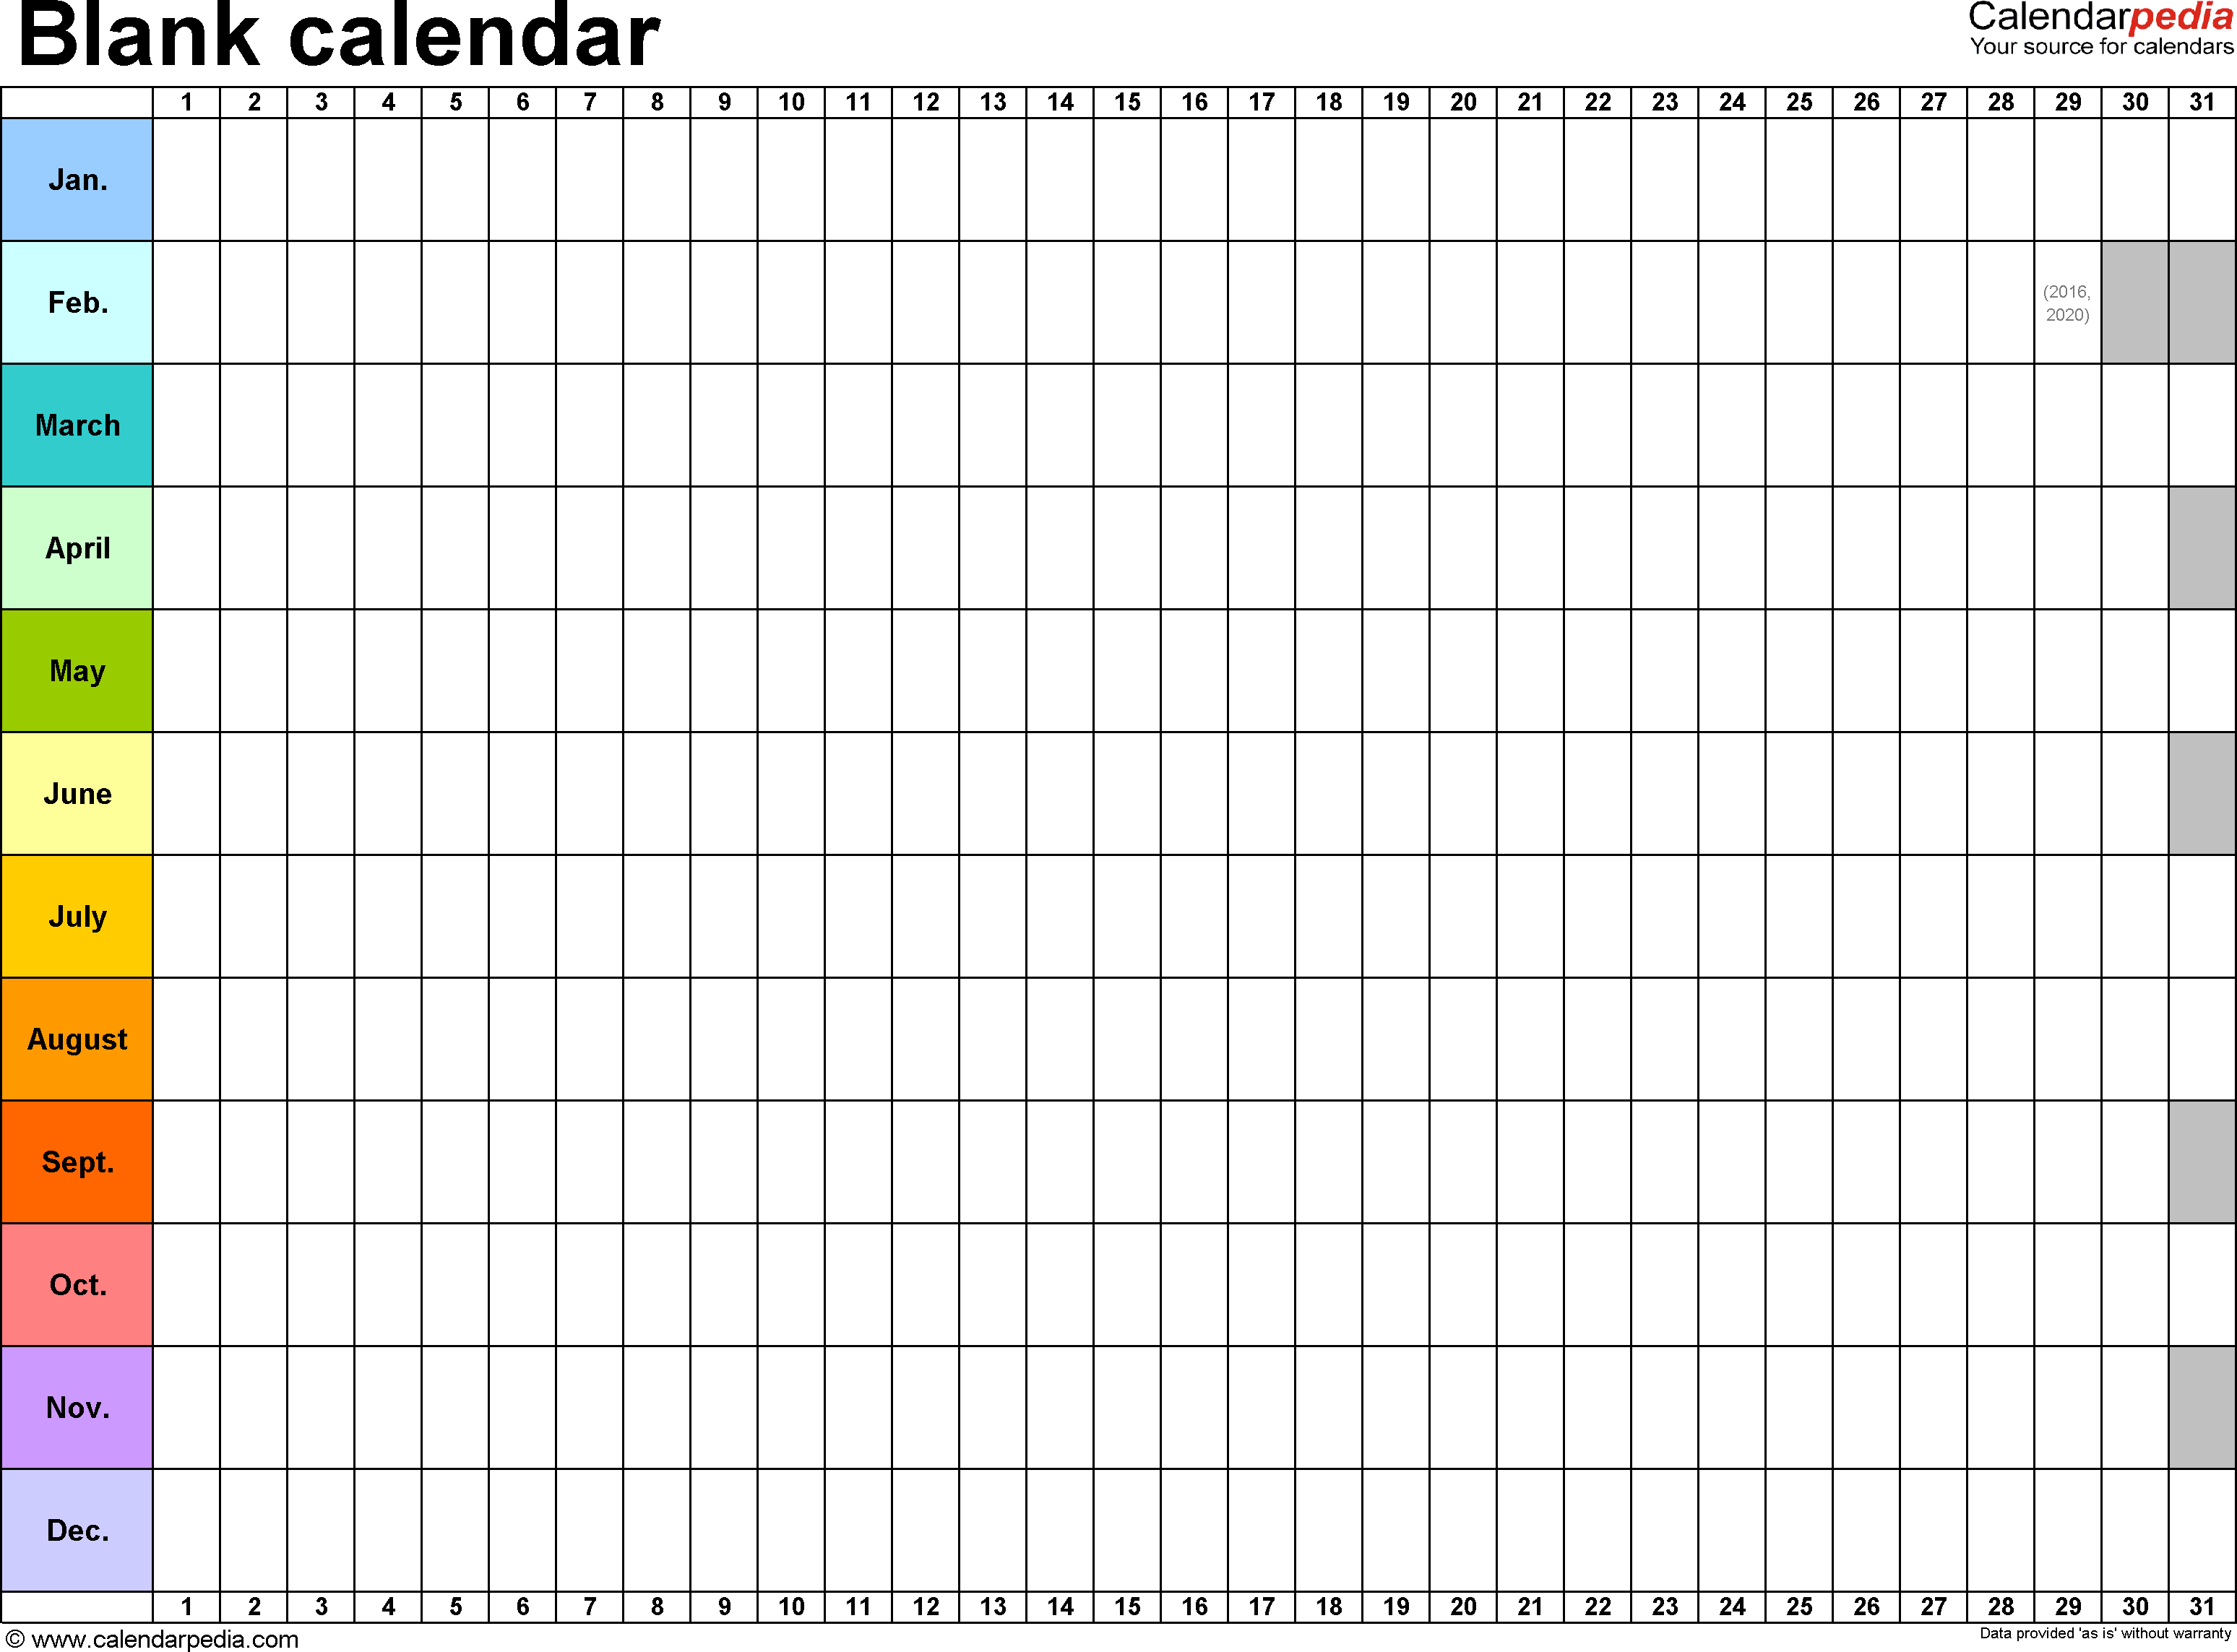 Blank Calendar - 9 Free Printable Microsoft Word Templates inside Template For Calendar By Month